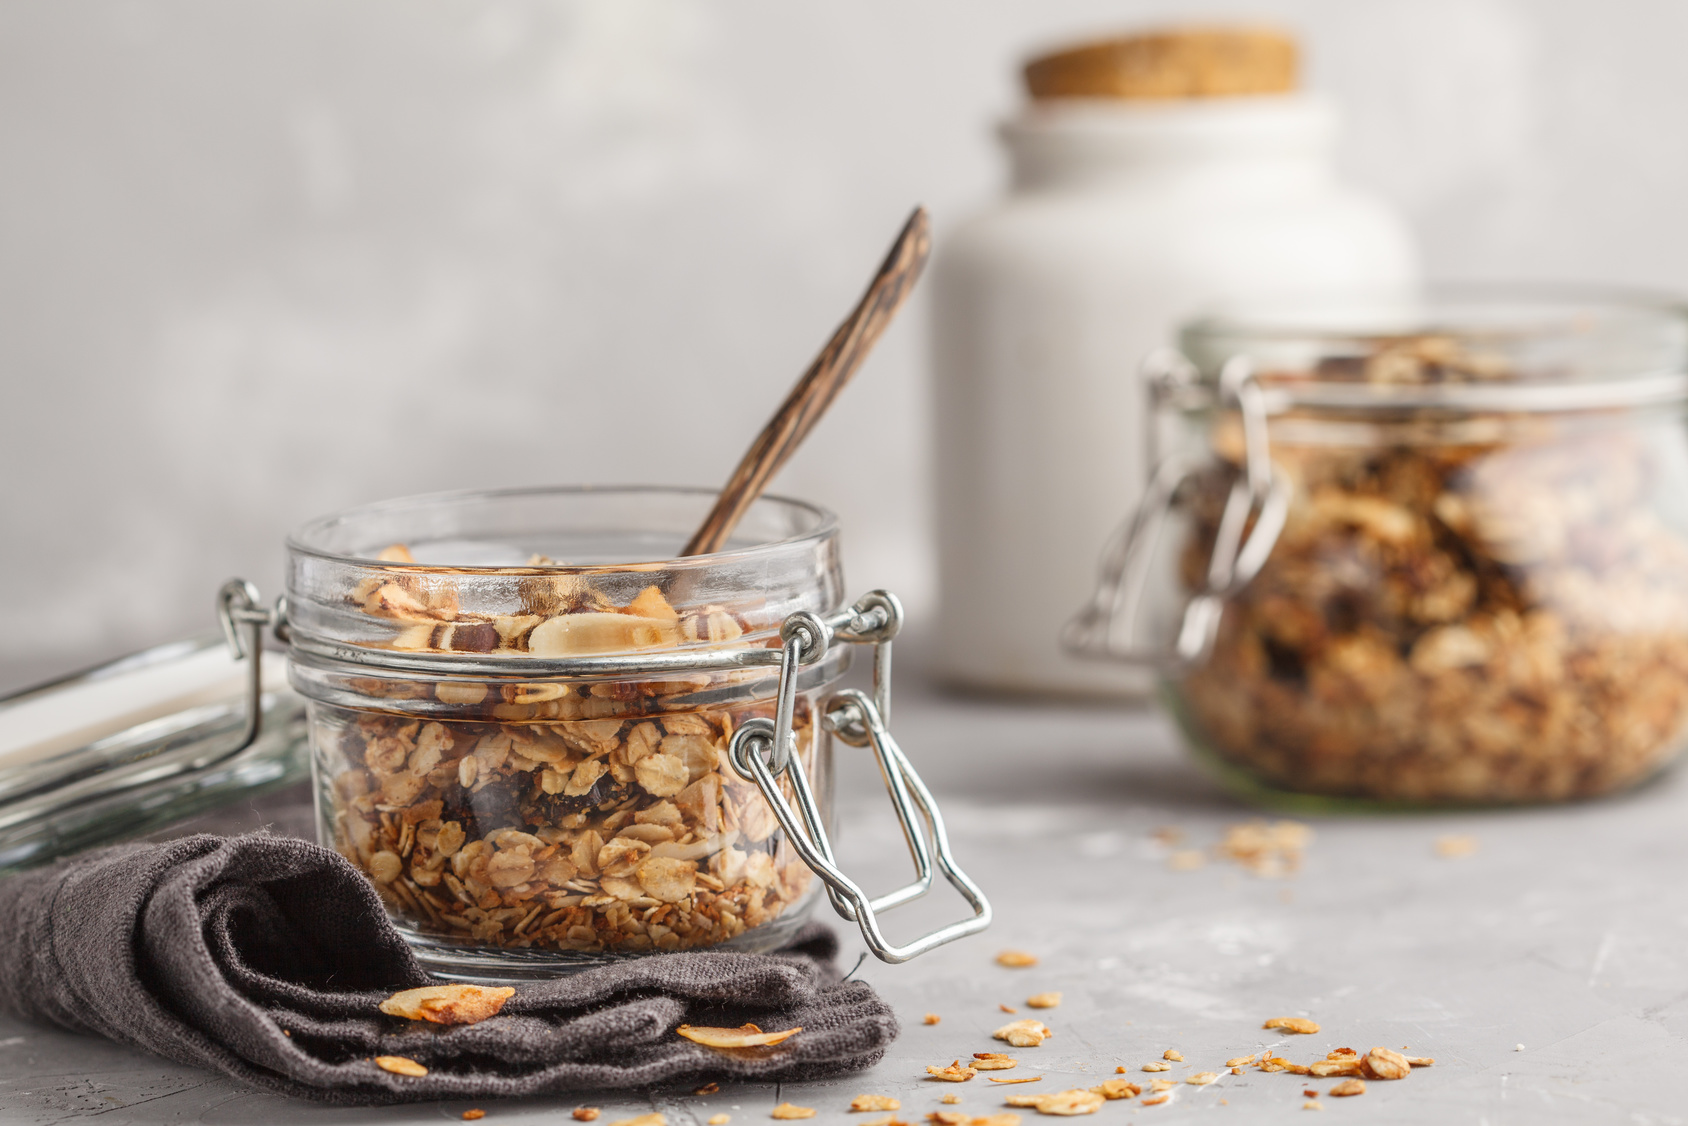 Faire son muesli maison facilement